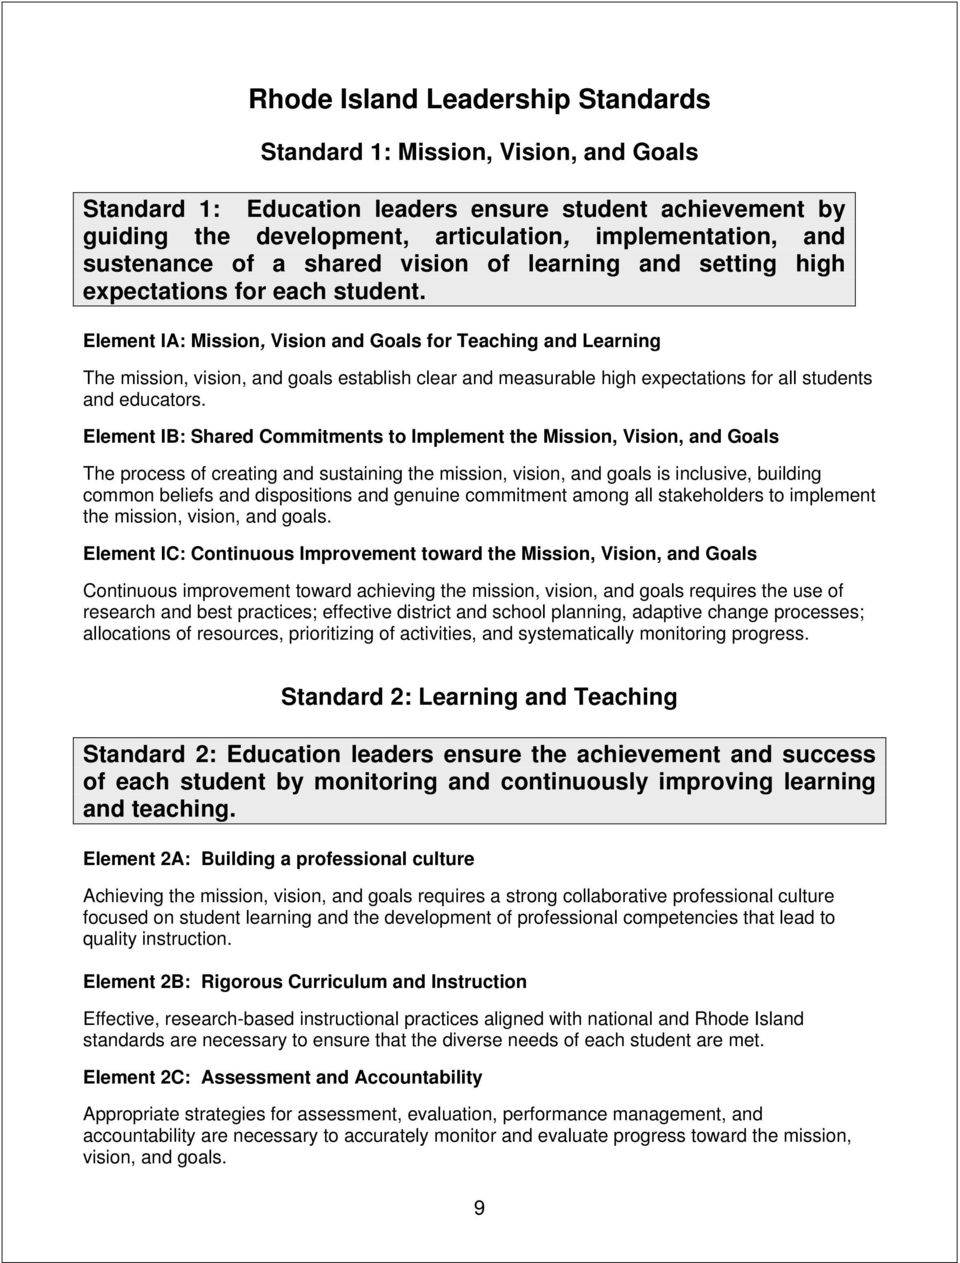 Element IA: Mission, Vision and Goals for Teaching and Learning The mission, vision, and goals establish clear and measurable high expectations for all students and educators.